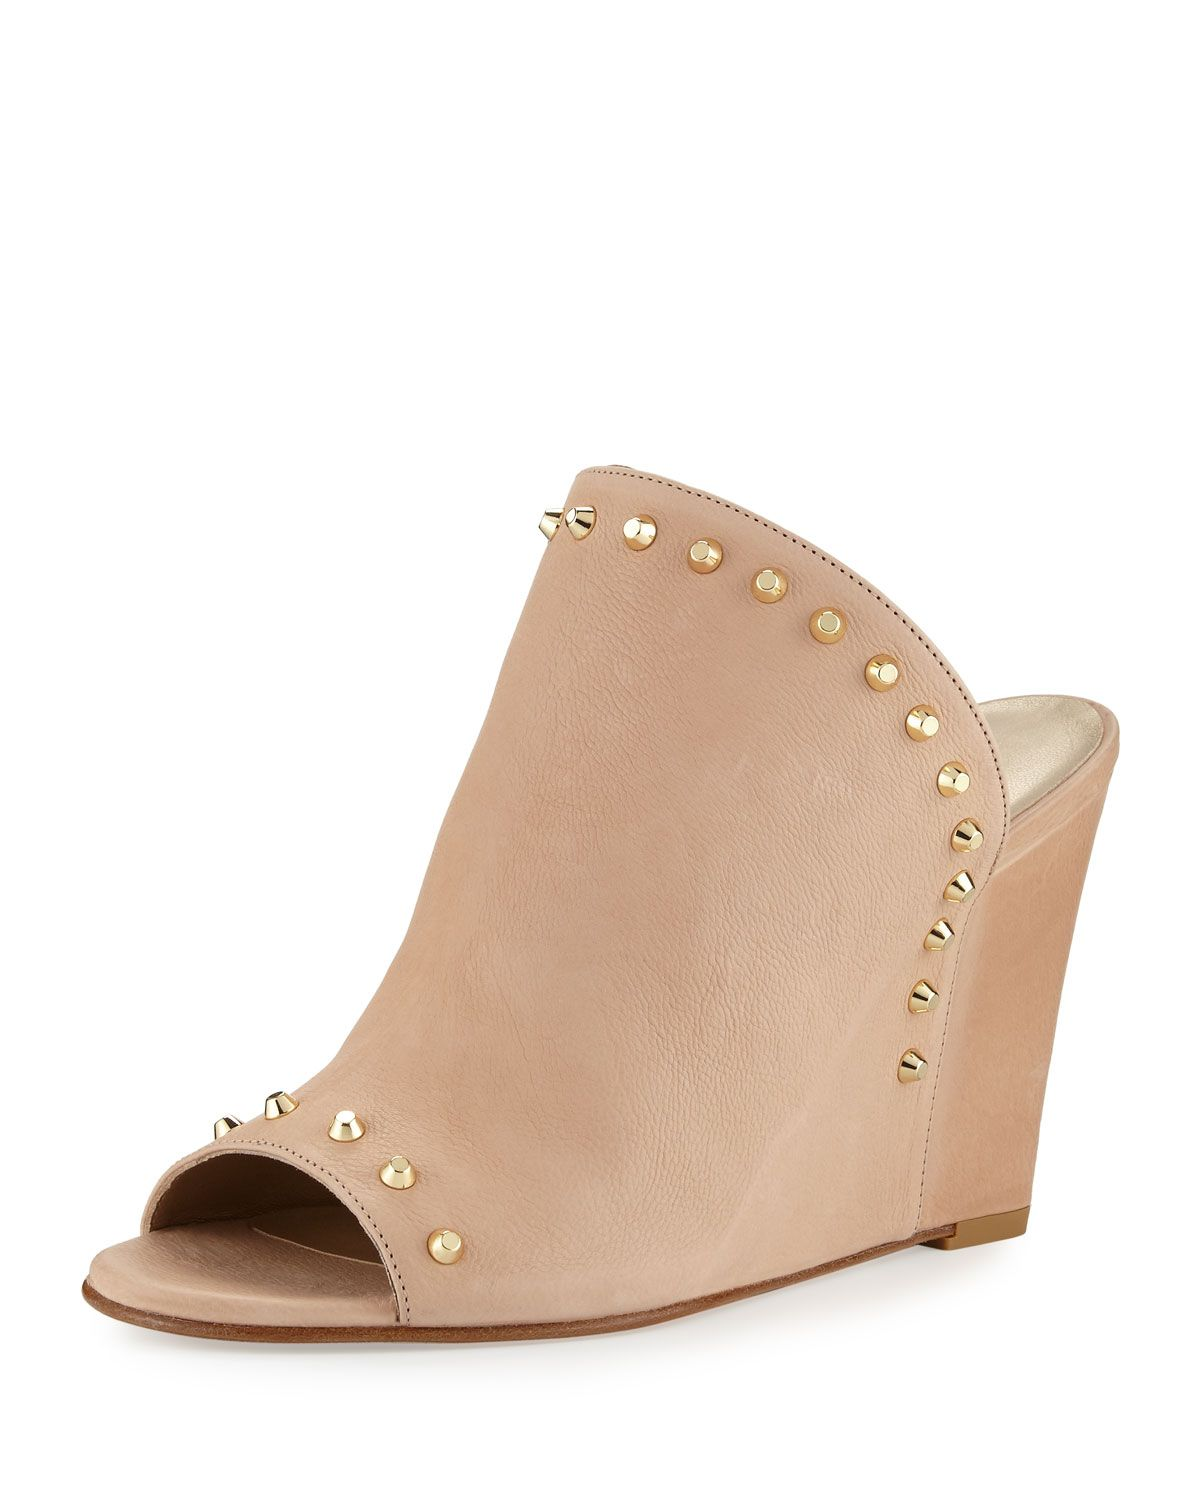 Upfrontal Studded Leather Wedge Slide Sandal, Nude, Women's, Size: 35B/5B - Stuart Weitzman